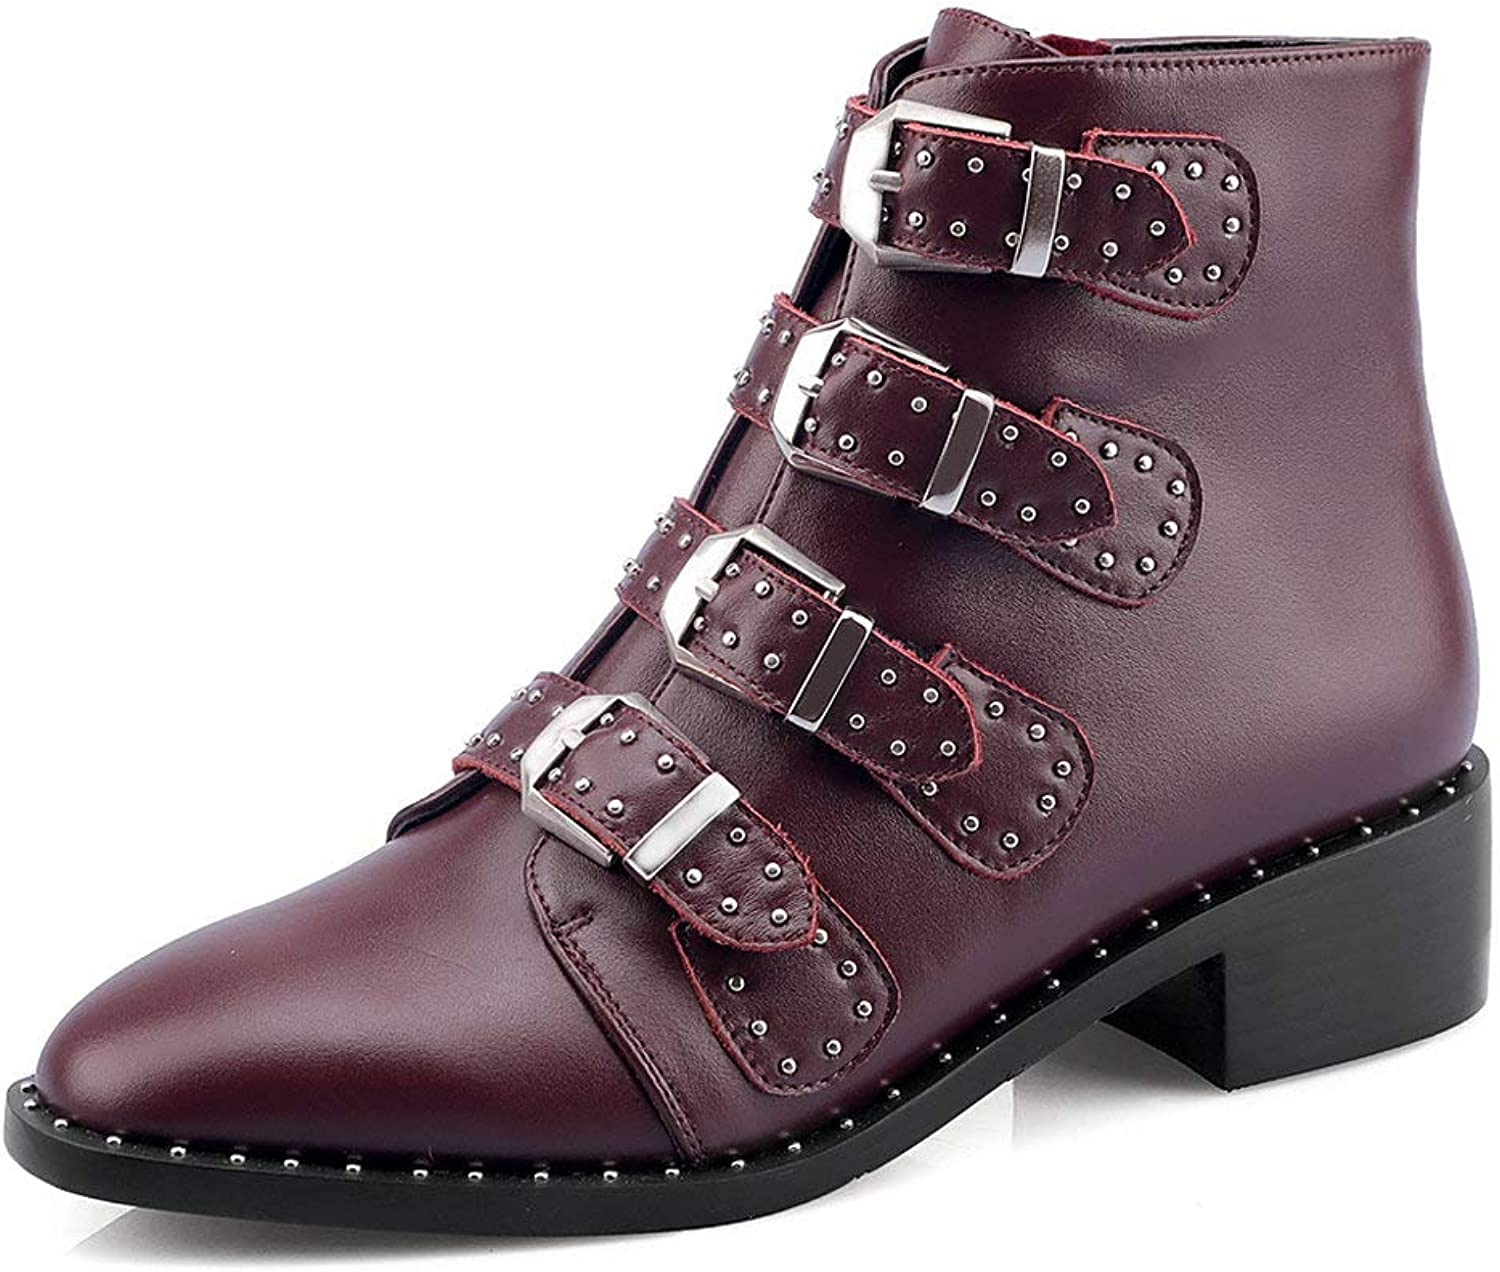 AnMengXinLing Rivet Studded Ankle Boot Women Block Low Heel Pointed Toe Leather Buckle Strappy Punk Cowboy Chelsea Boot